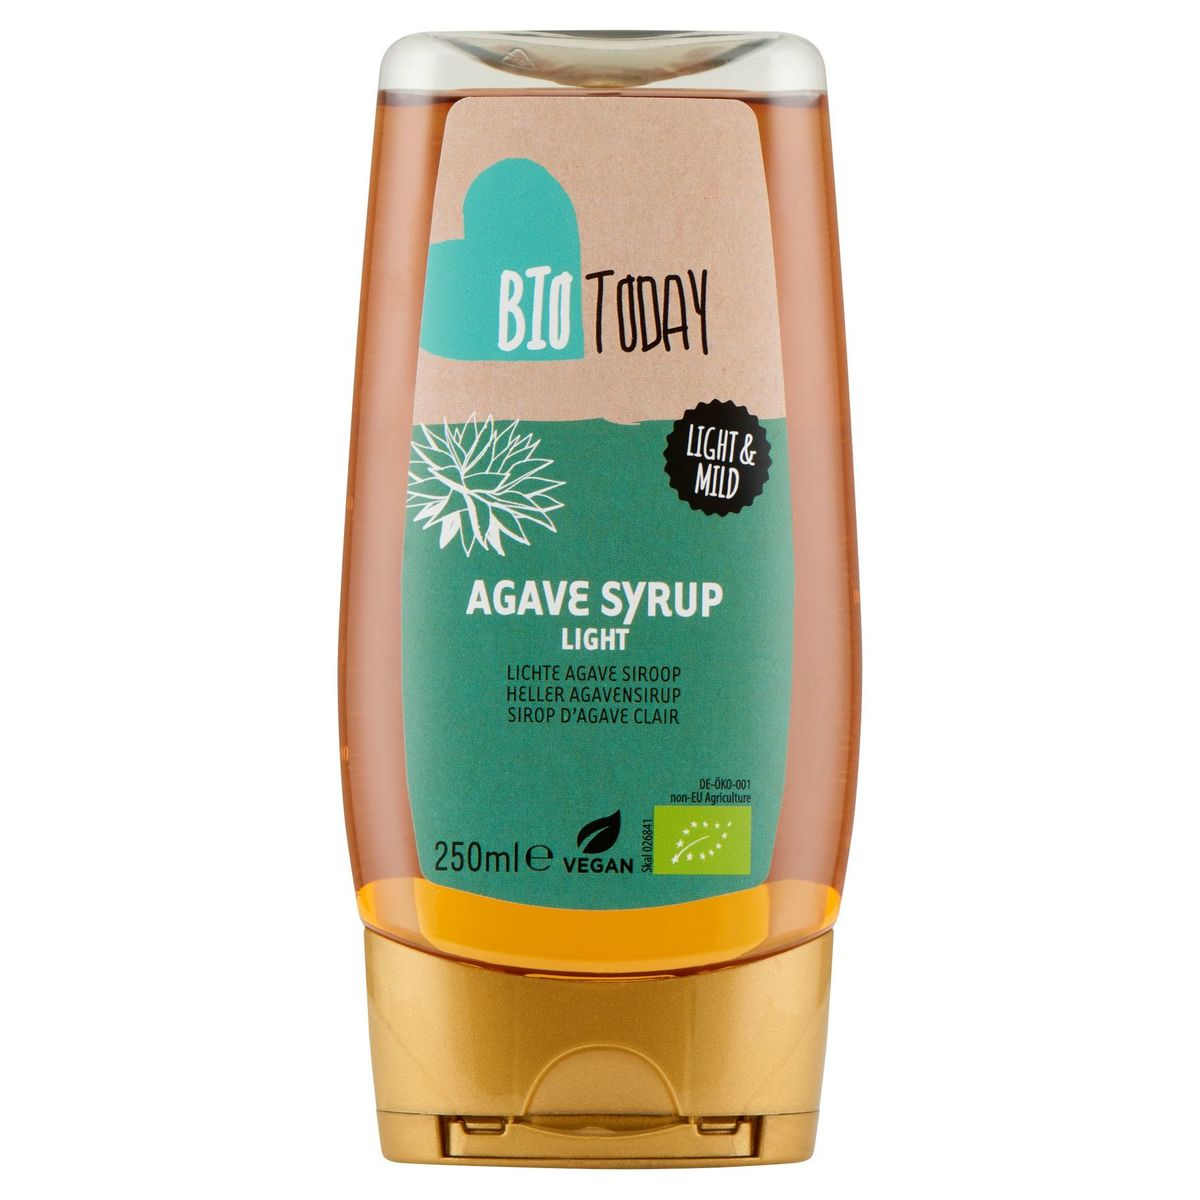 Bio Today Sirop d'Agave Clair 250 ml